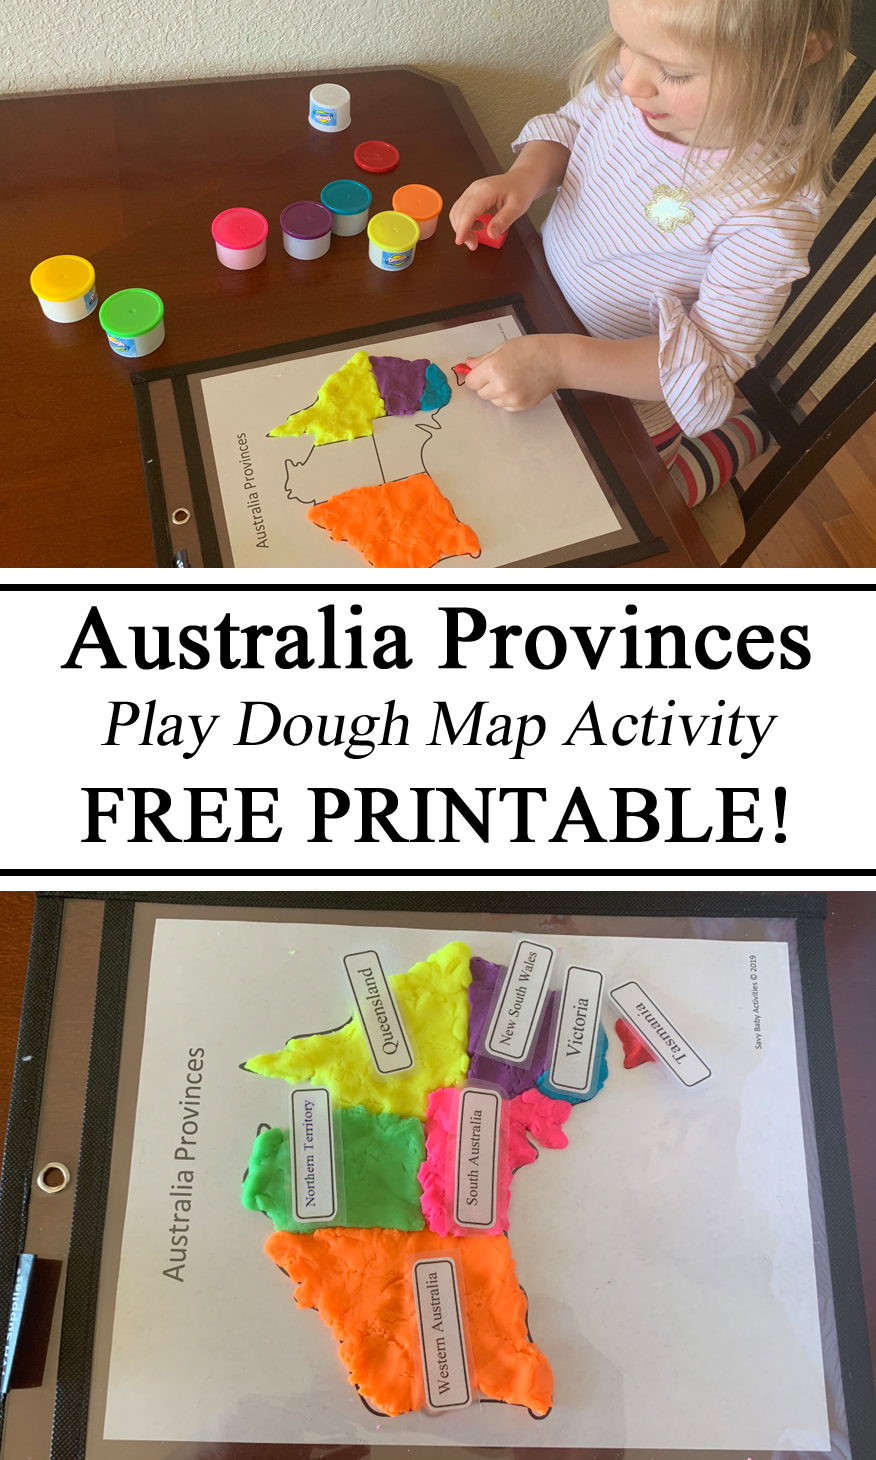 Homeschooling, Homeschool, Australia Unit, Geography, Playdough Play Dough Doh Map Printable Mat Download Free Resources Teachers, Preschool Kindergarten, Printables, #travelingthroughlearning